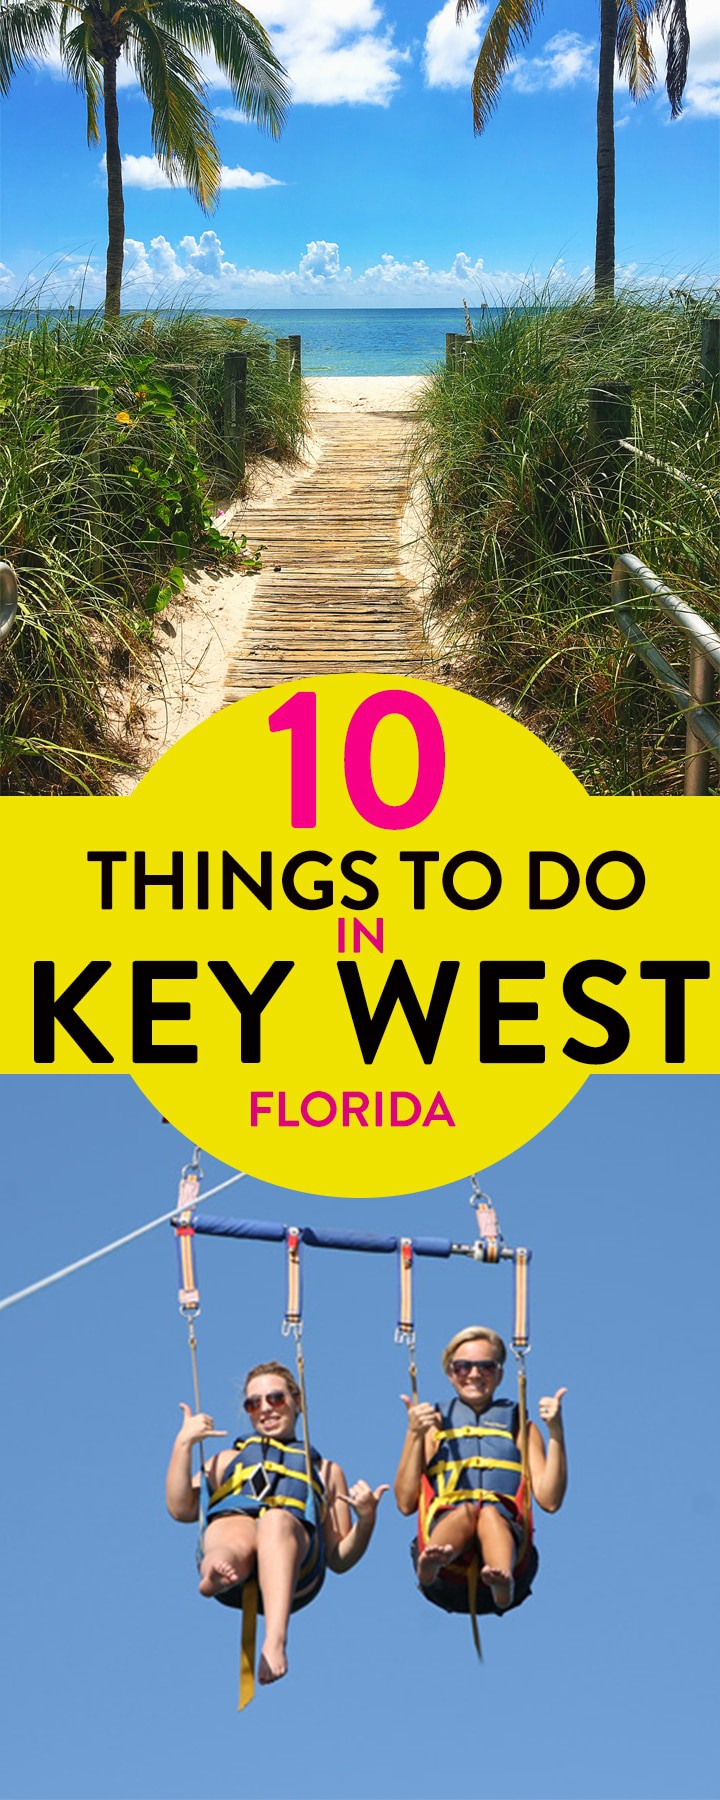 Looking for activities in Key West Florida? From jet skiing, parasailing, and beautiful Florida beaches here are 10 things to do in Key West for all ages! #KeyWest #FamilyTravel #FloridaTravel #thebewithinkitchen #thingstodoinkeywest